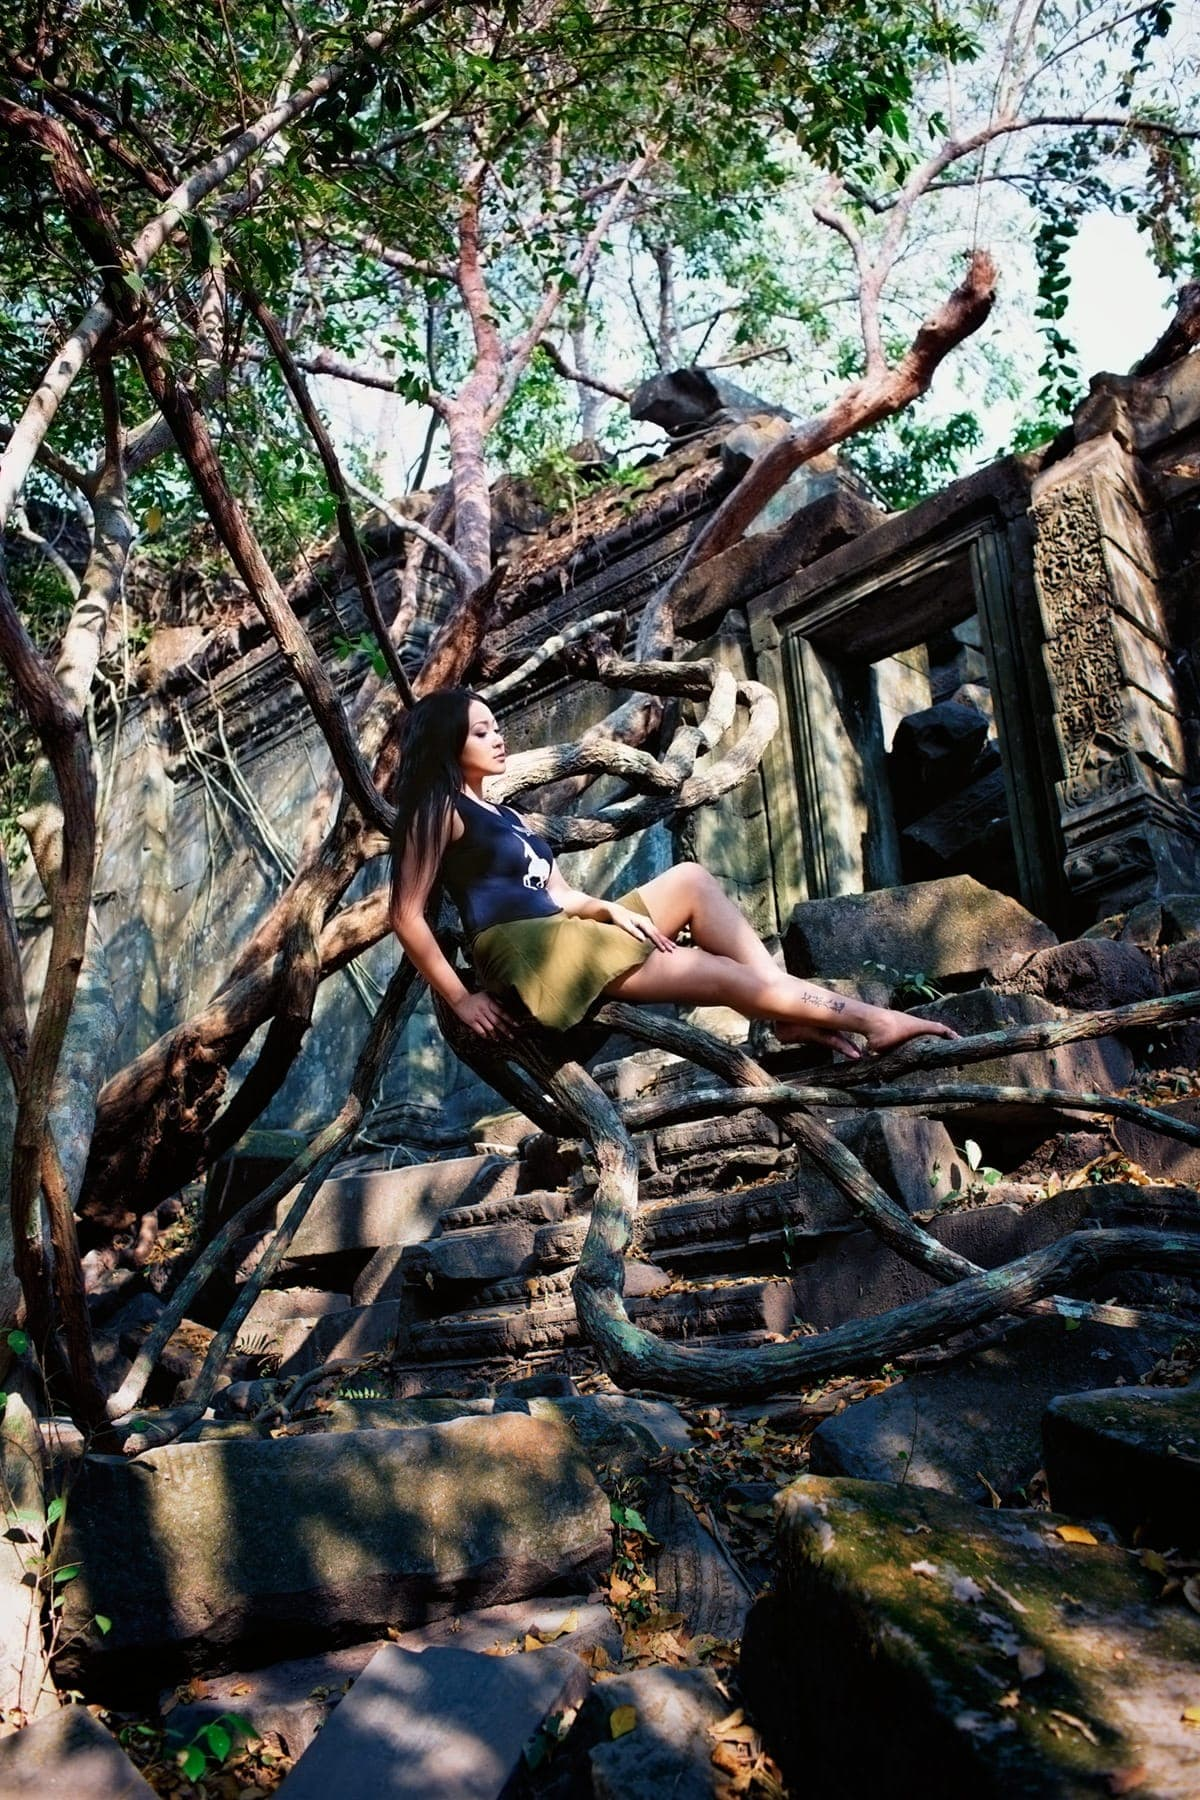 ruins jungles and swinging vines at Beng Mealea Angkor Temple